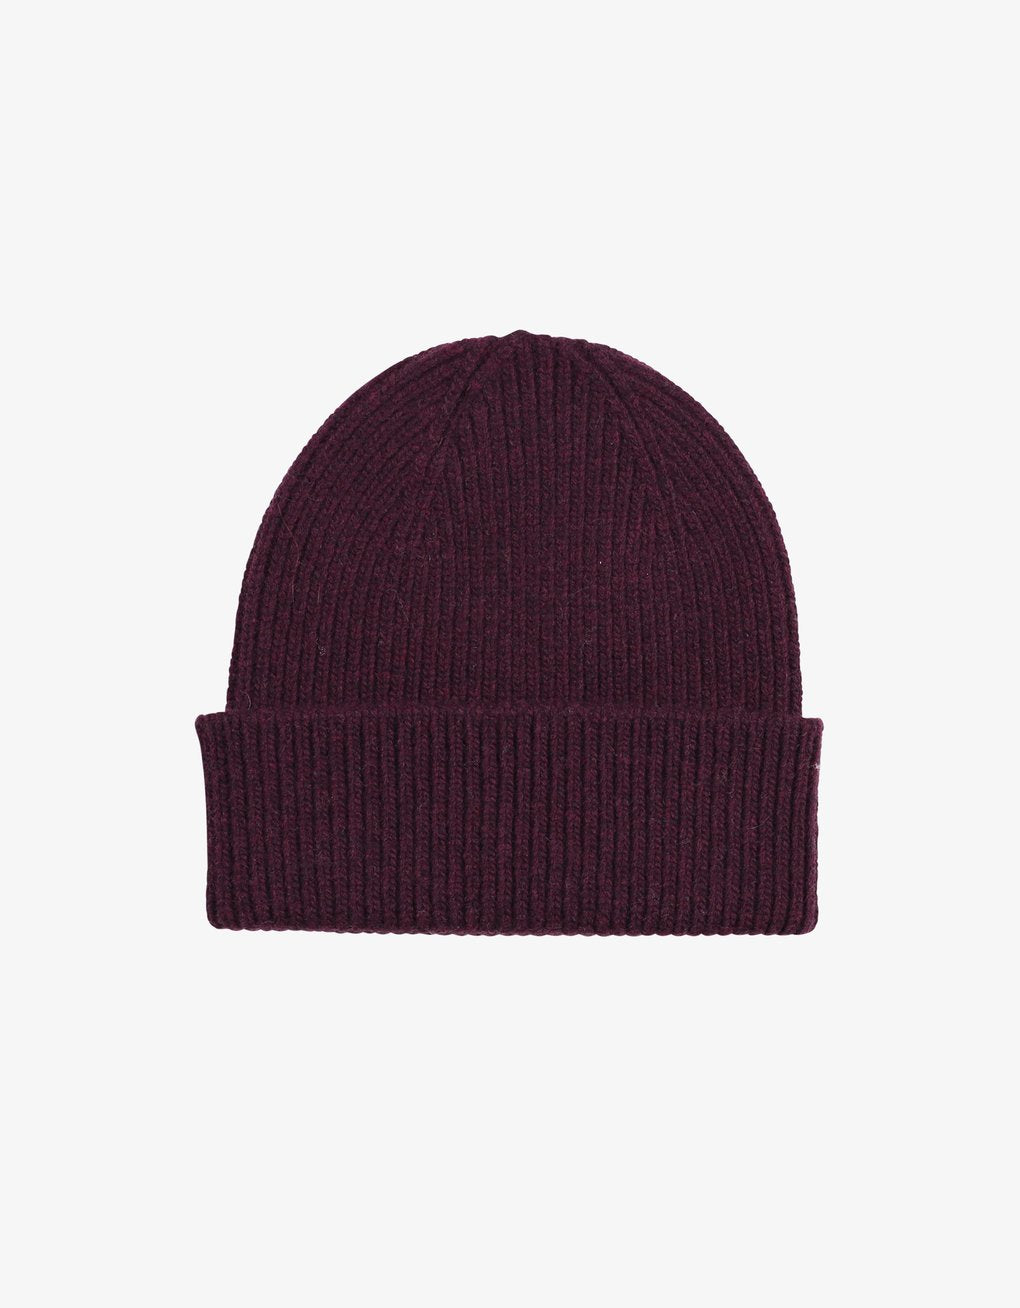 COLORFUL STANDARD | Merino Wool Beanie | Oxblood Red - LONDØNWORKS